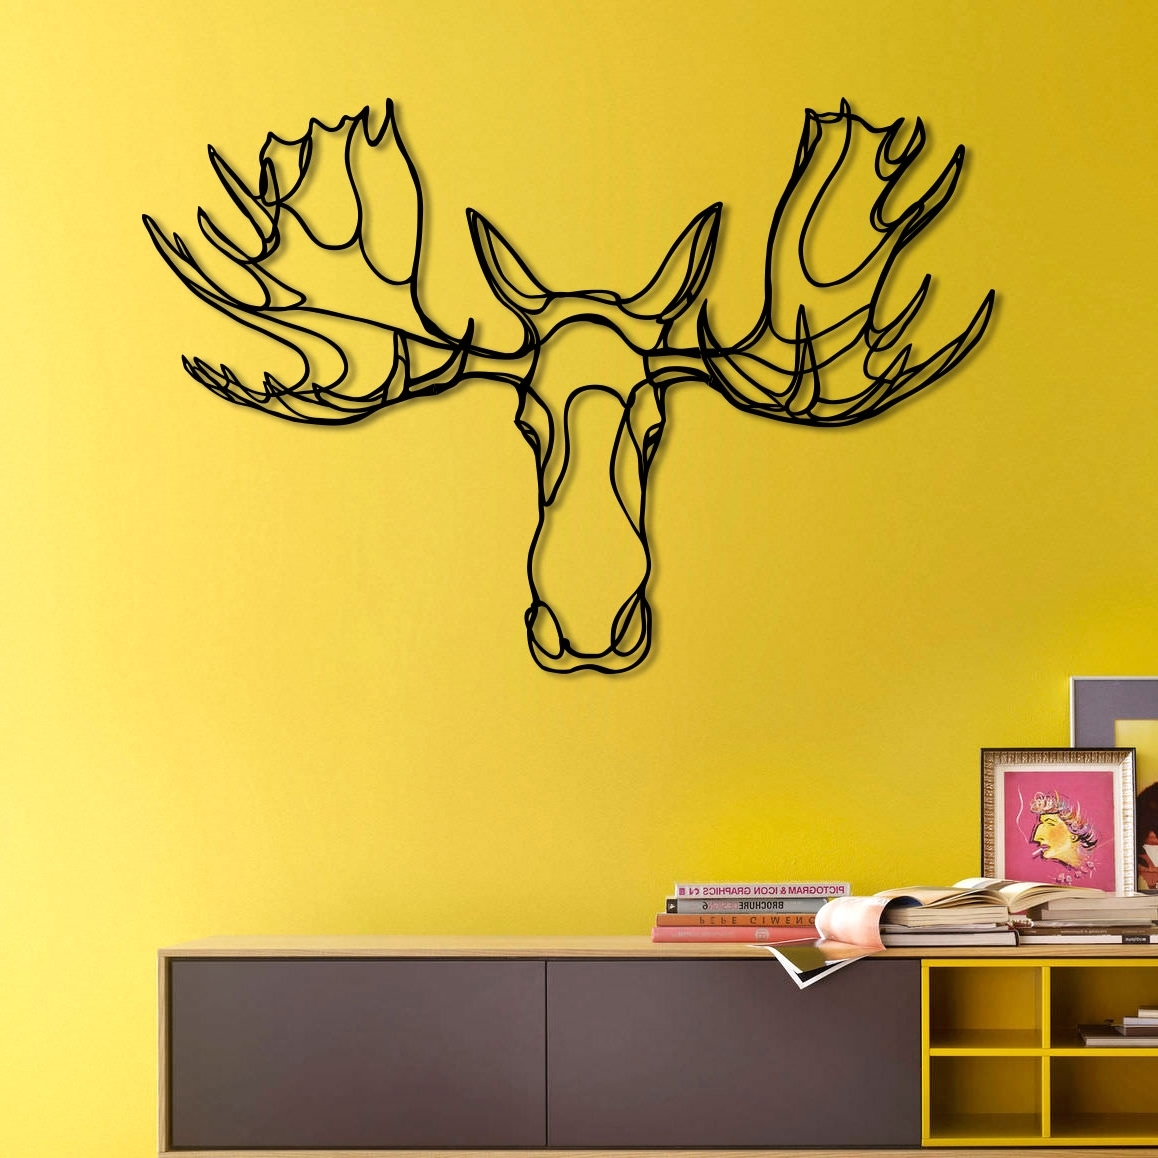 Fine Moose Head Wall Decor Pictures Inspiration - The Wall Art ...